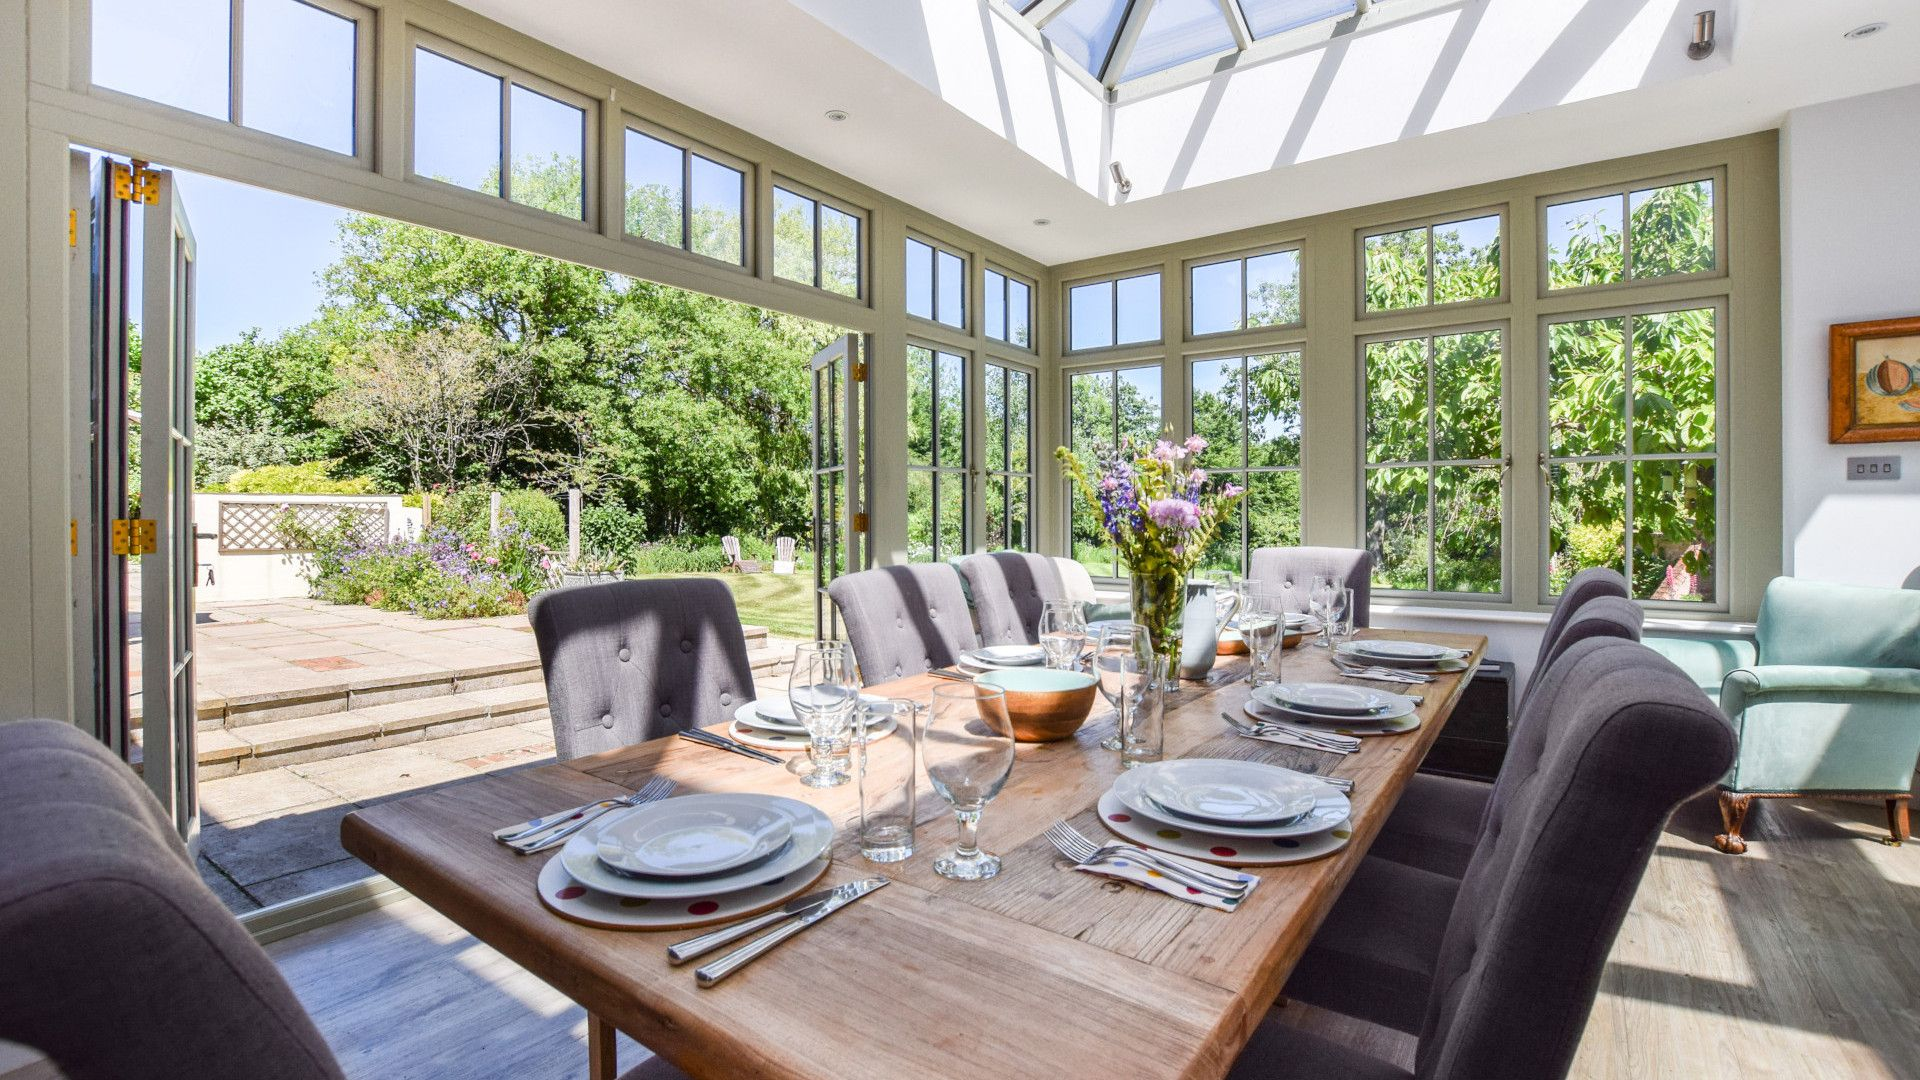 Dining area by patio doors, Old Manse, Bolthole Retreats